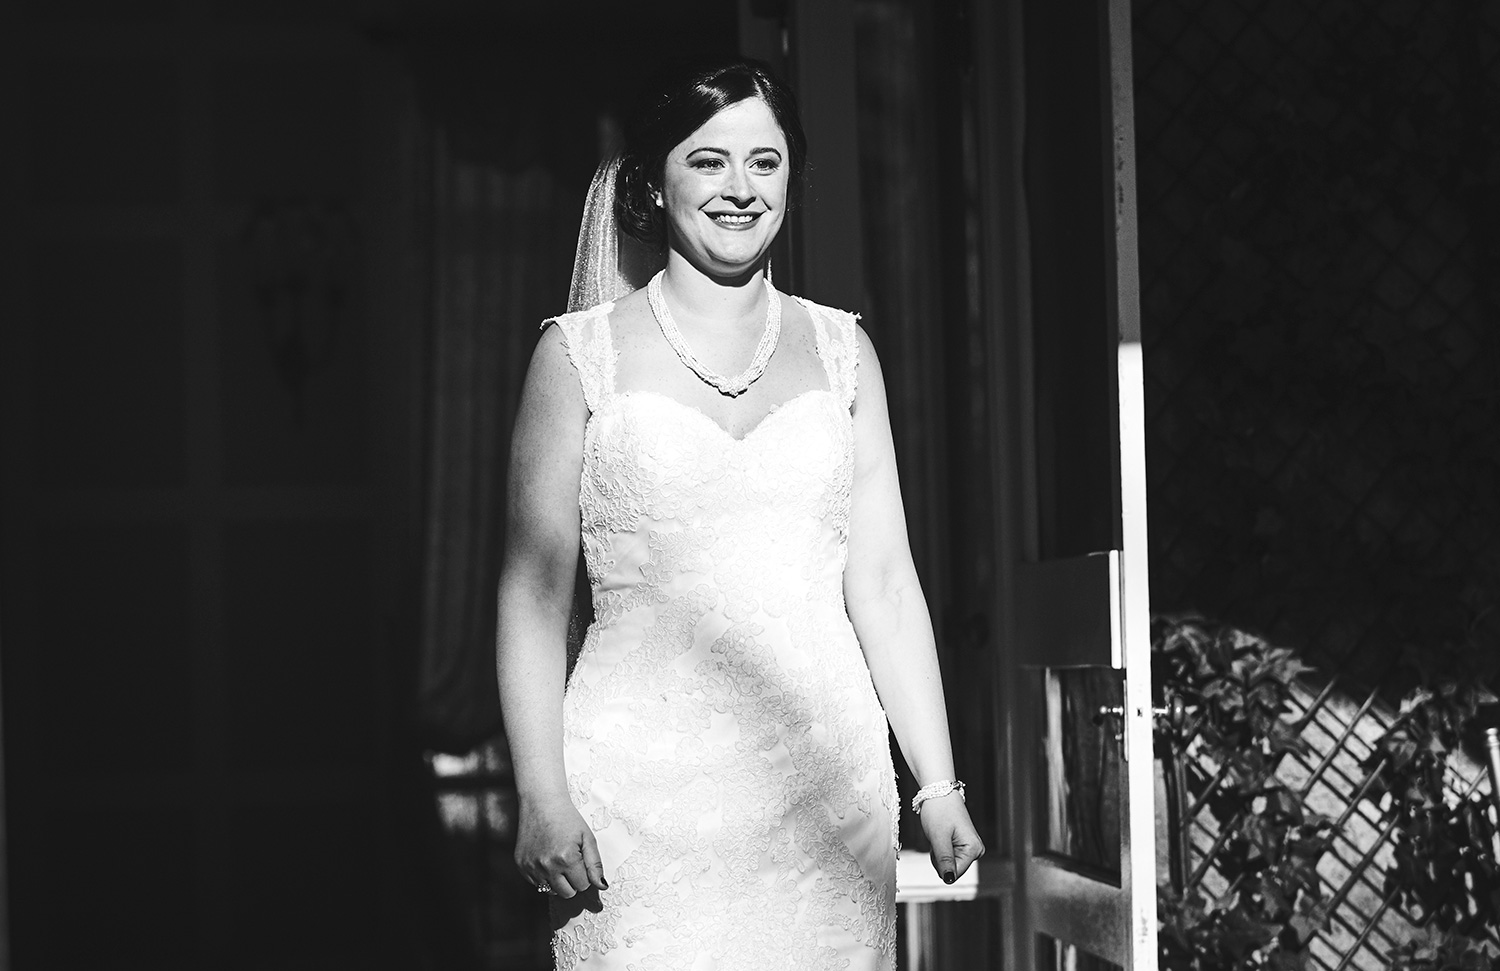 161119_ArrowParkLake&LodgeWedding_By_BriJohnsonWeddings_0048.jpg